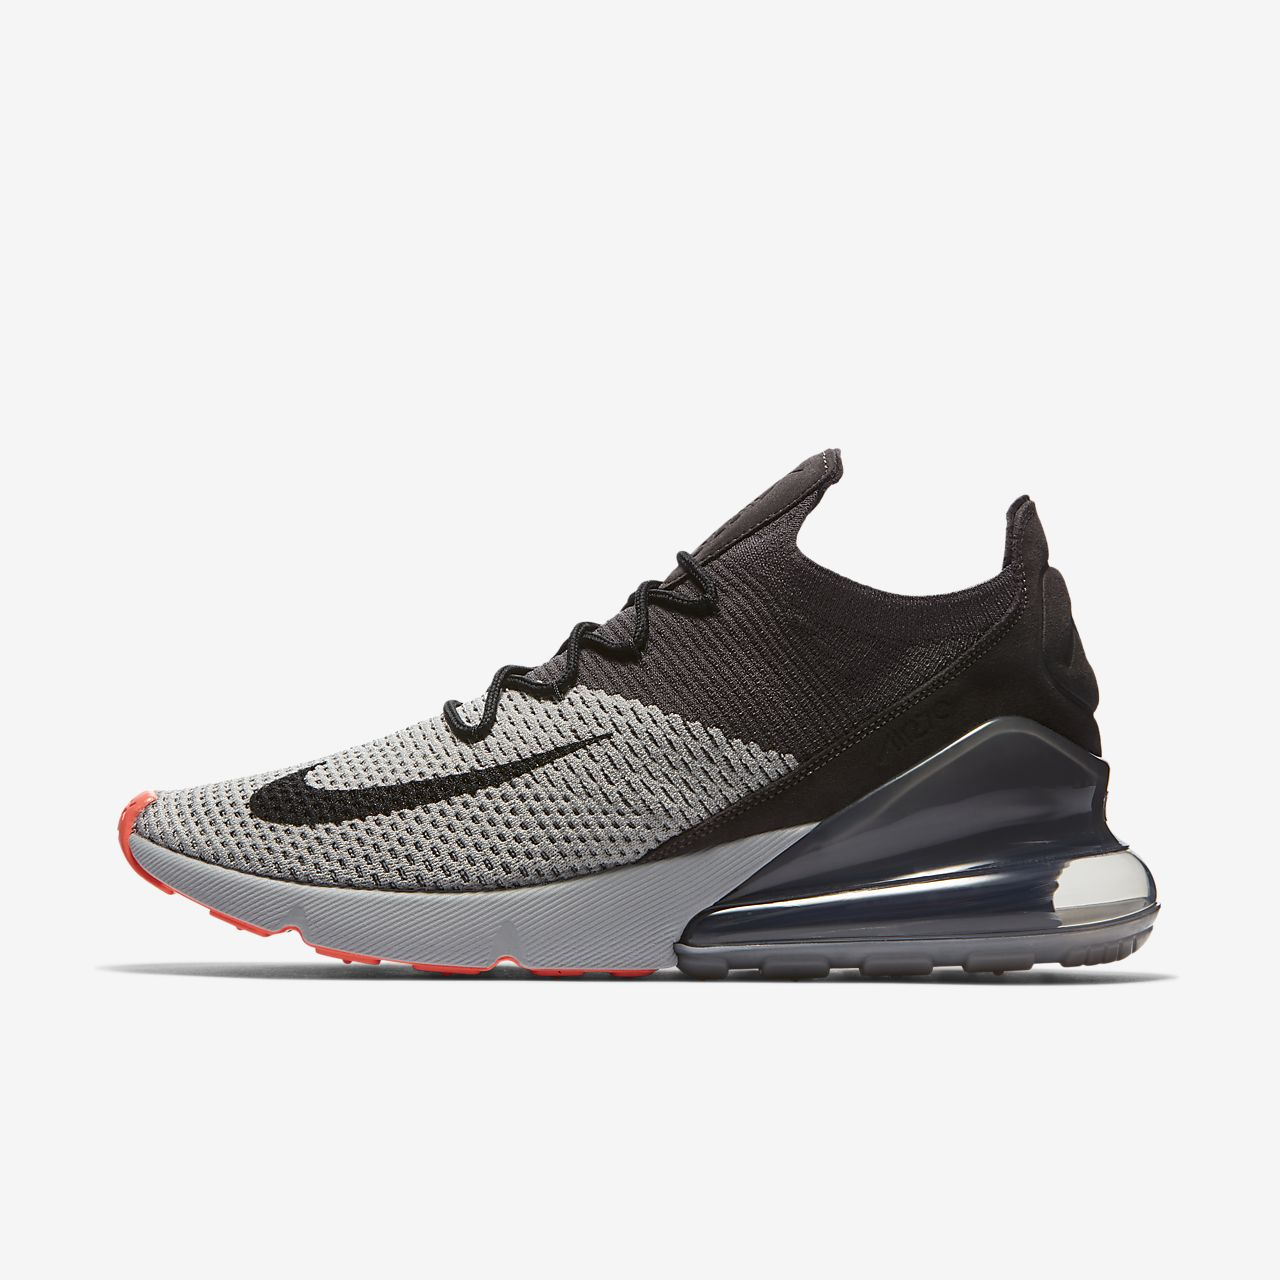 finest selection 10bf1 92762 ... Nike Air Max 270 Flyknit Men s Shoe